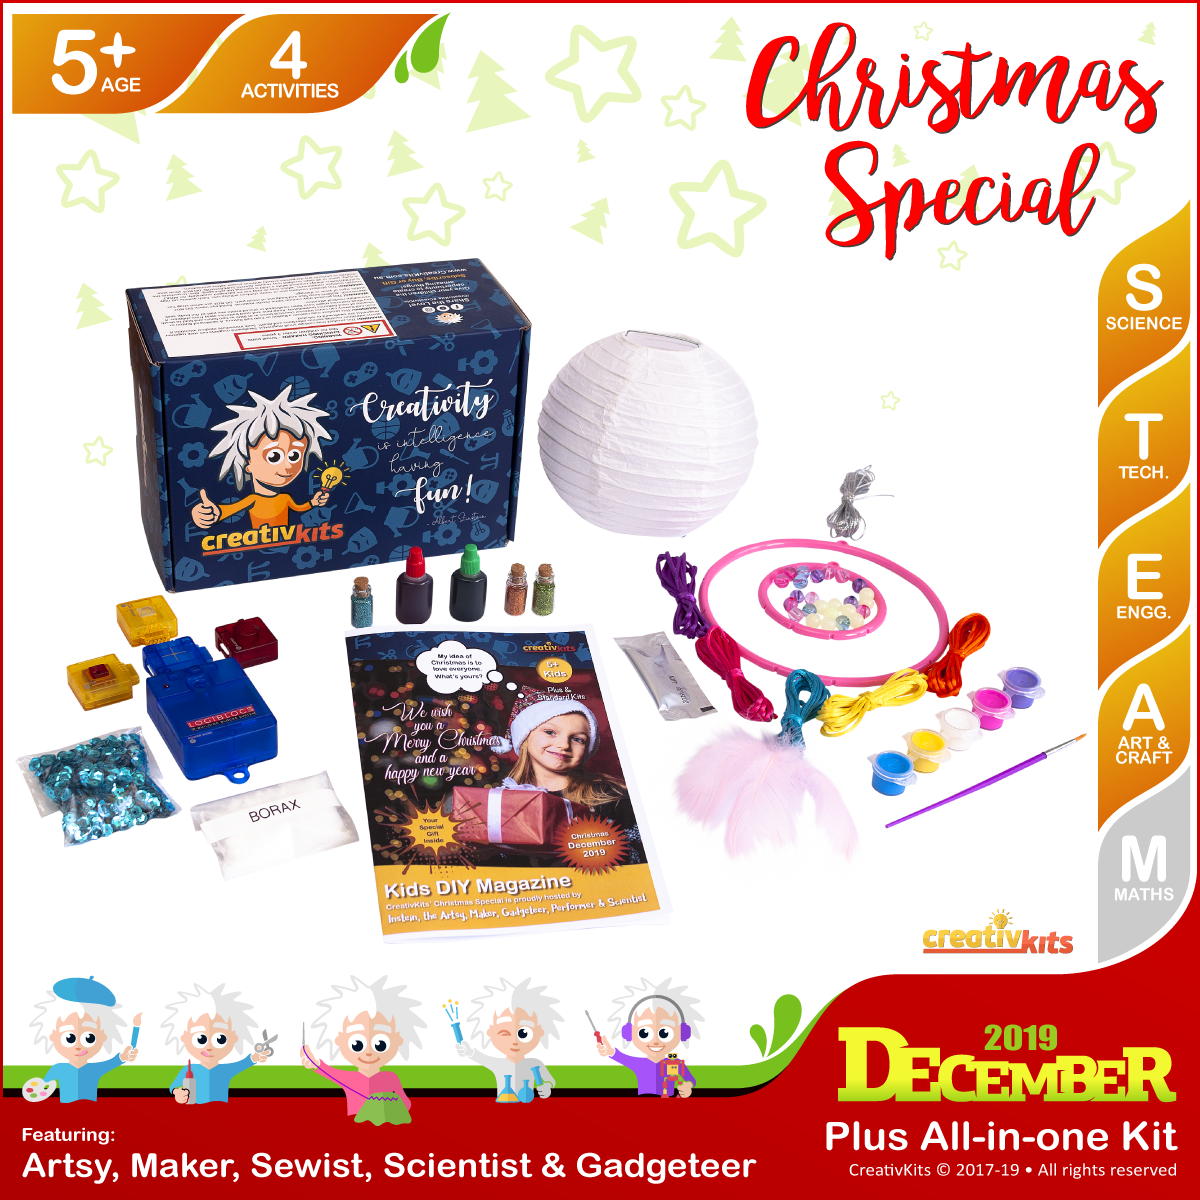 December Plus Kit • Age 5 plus • DIY Santa Alarm, Christmas Glitter Slime, GID Dreamcatcher and Painted Xmas Lantern